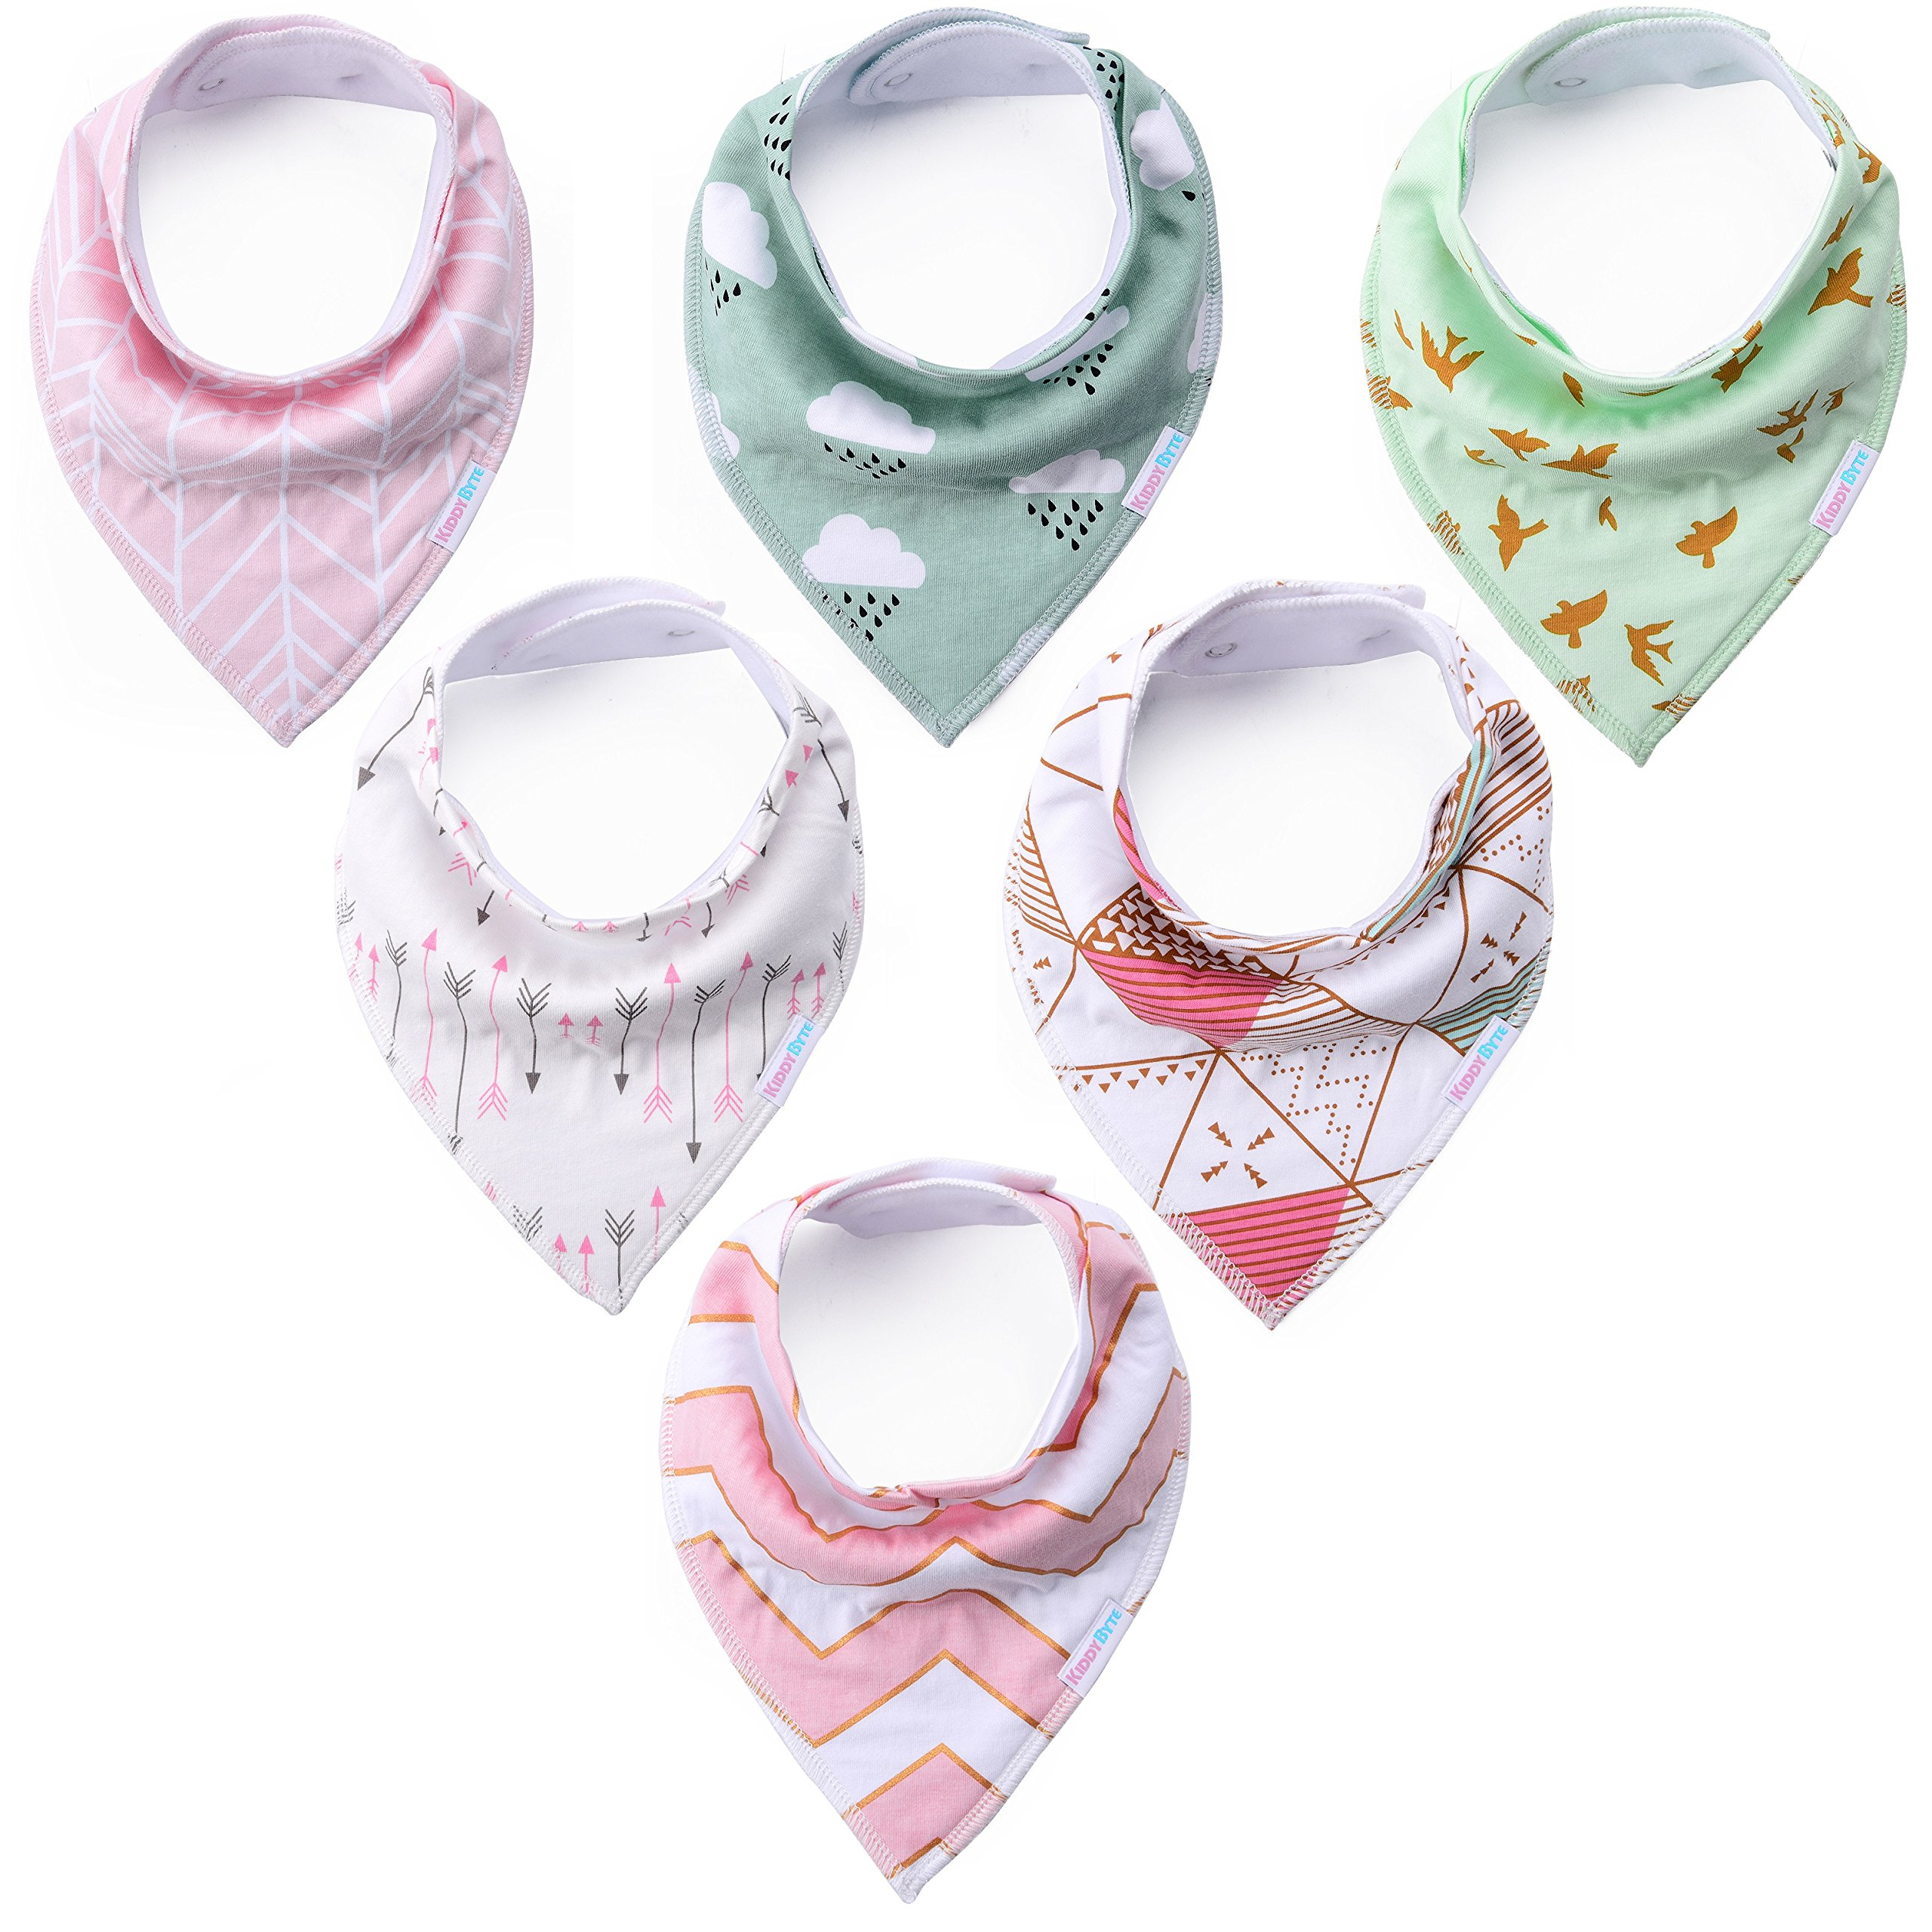 Baby Bandana Drool Bibs - Cute Kids Design for Girls, 100% Organic Cotton for Drooling and Teething, Perfect Baby Registry Gift for Infant and Newborn by KiddyByte